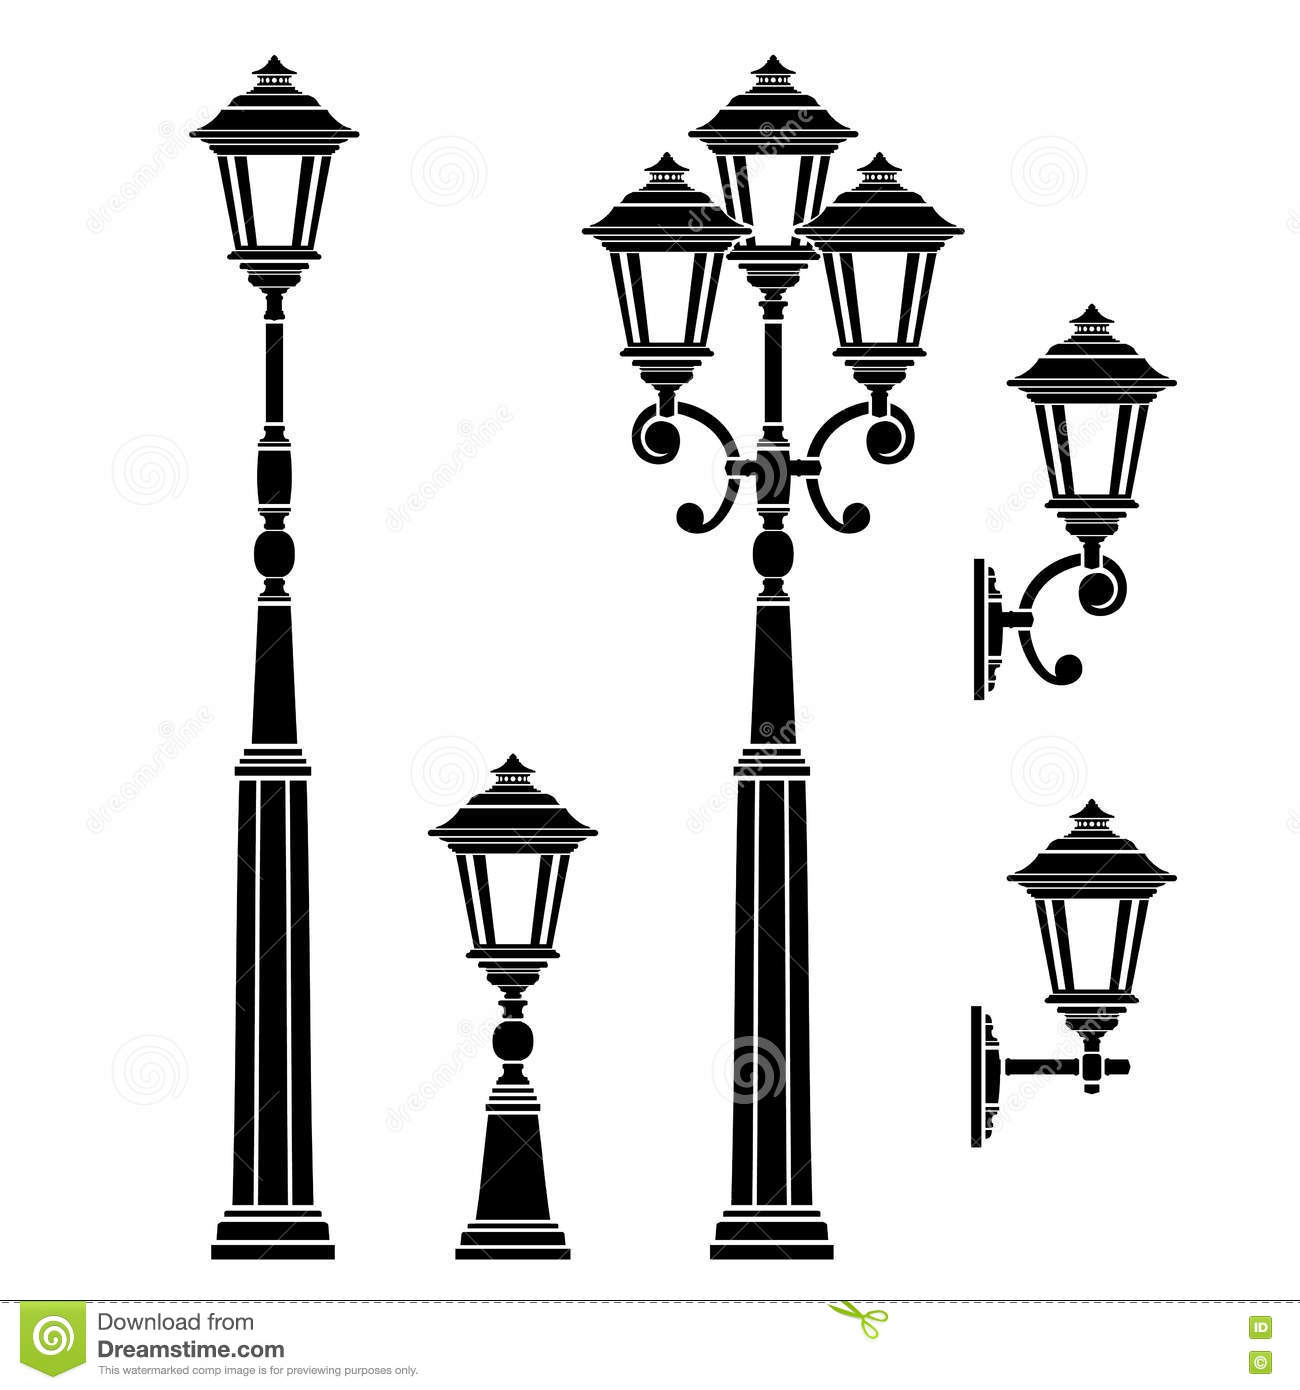 Lampadaire Exterieur Dwg Street Lamps Collection Lantern Set Stock Vector Image